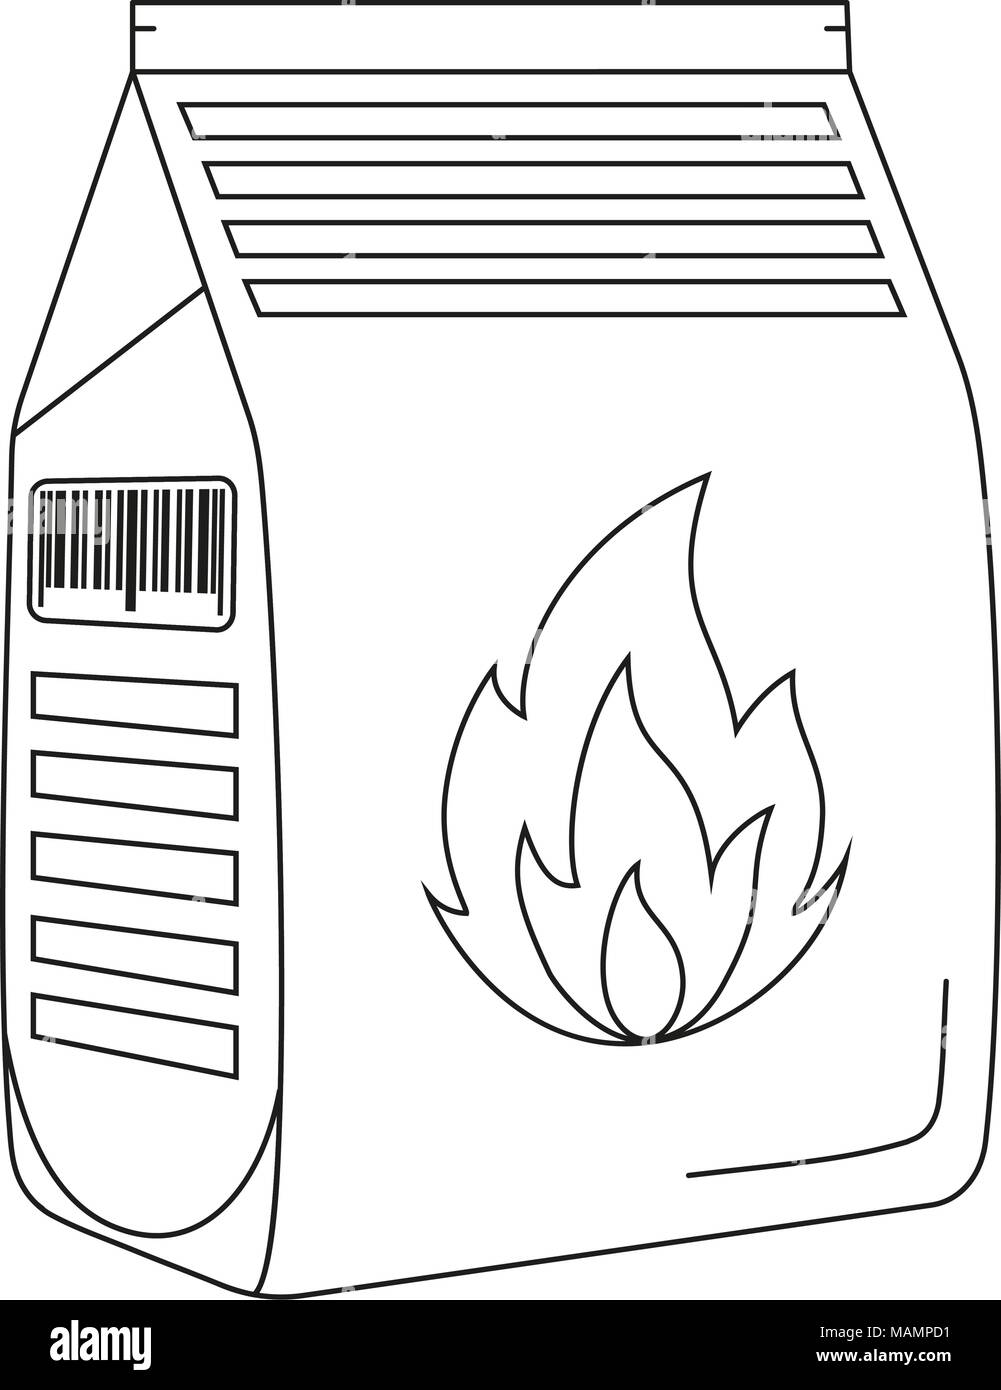 Line Art Black And White Coal Bag Outdoors Recreation Vector